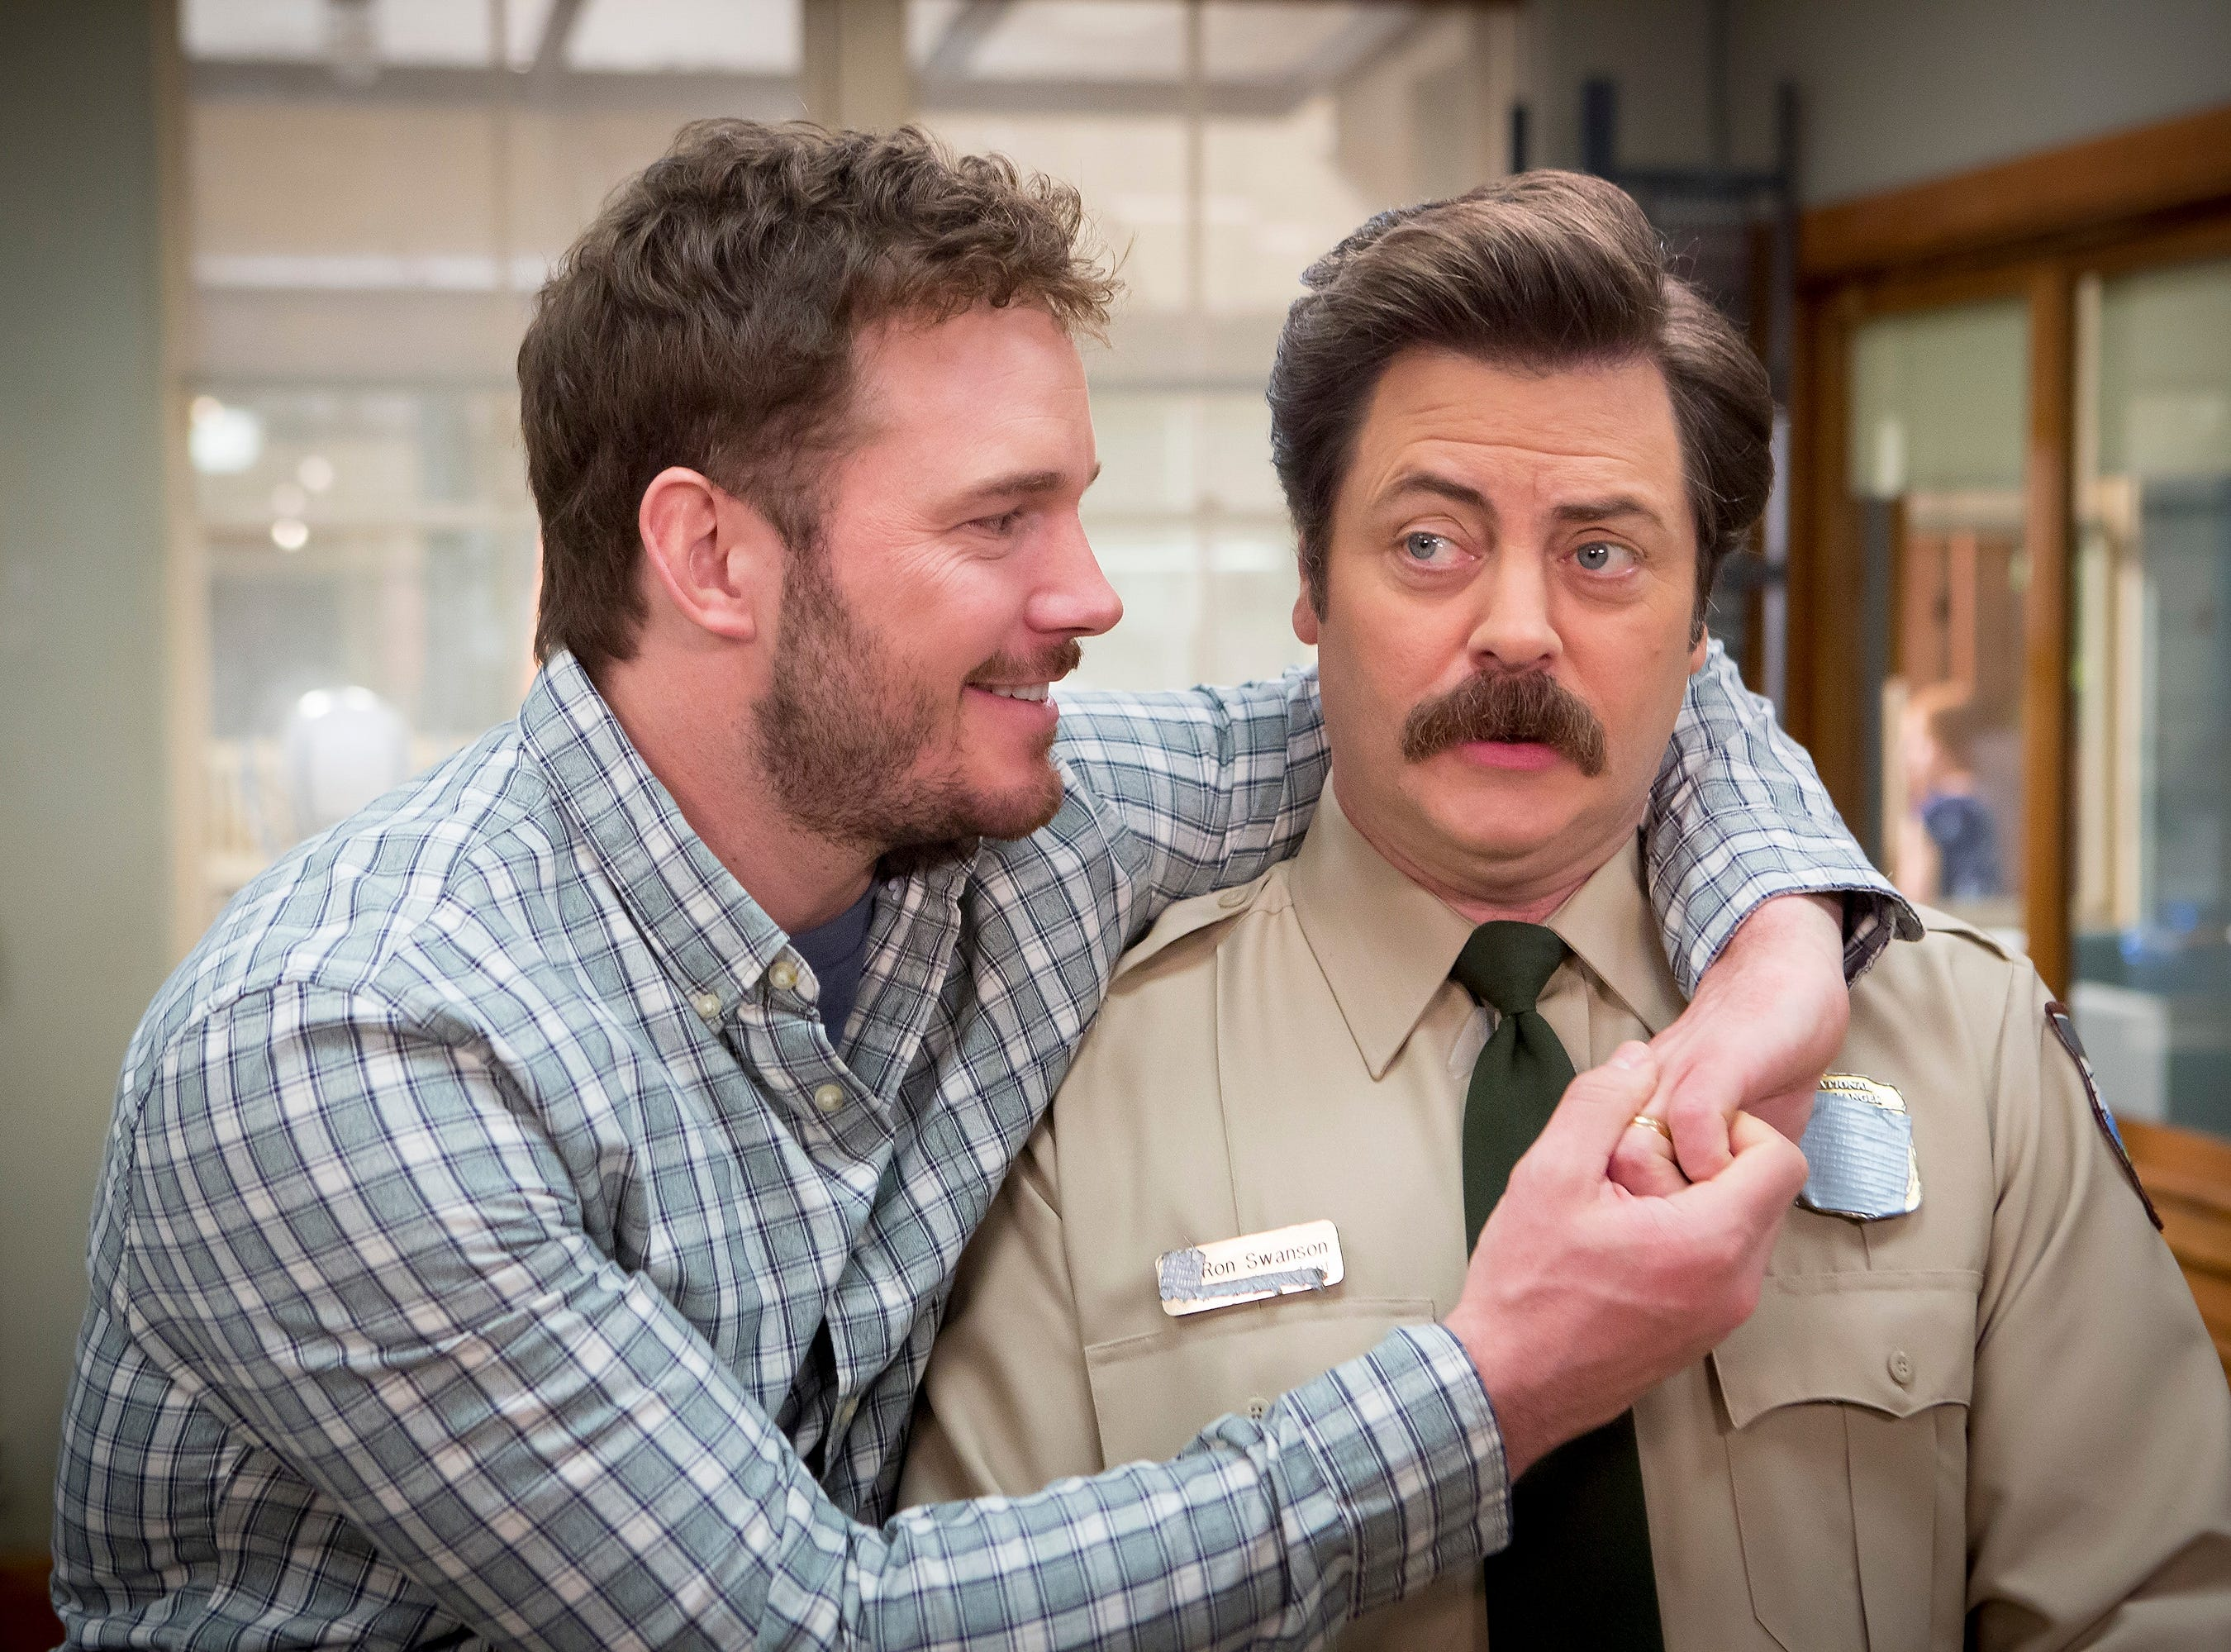 Ron Swanson's seriousness was balanced by the fun-loving parks and rec employee Andy Dwyer, played by Chris Pratt.